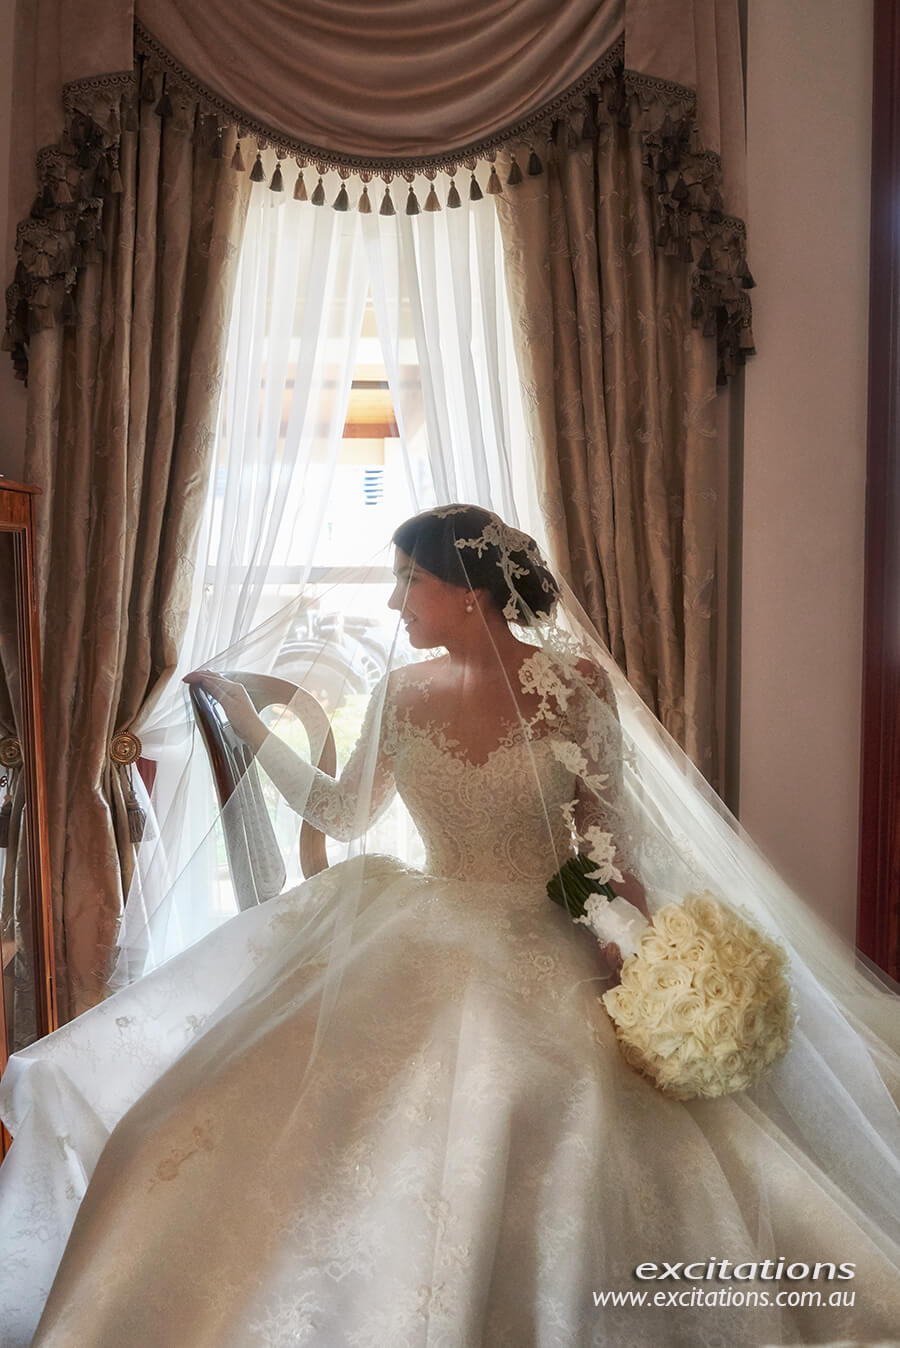 Bride seated in front of a window in a soft, romantic wedding portrait. Mildura wedding photography by Excitations.